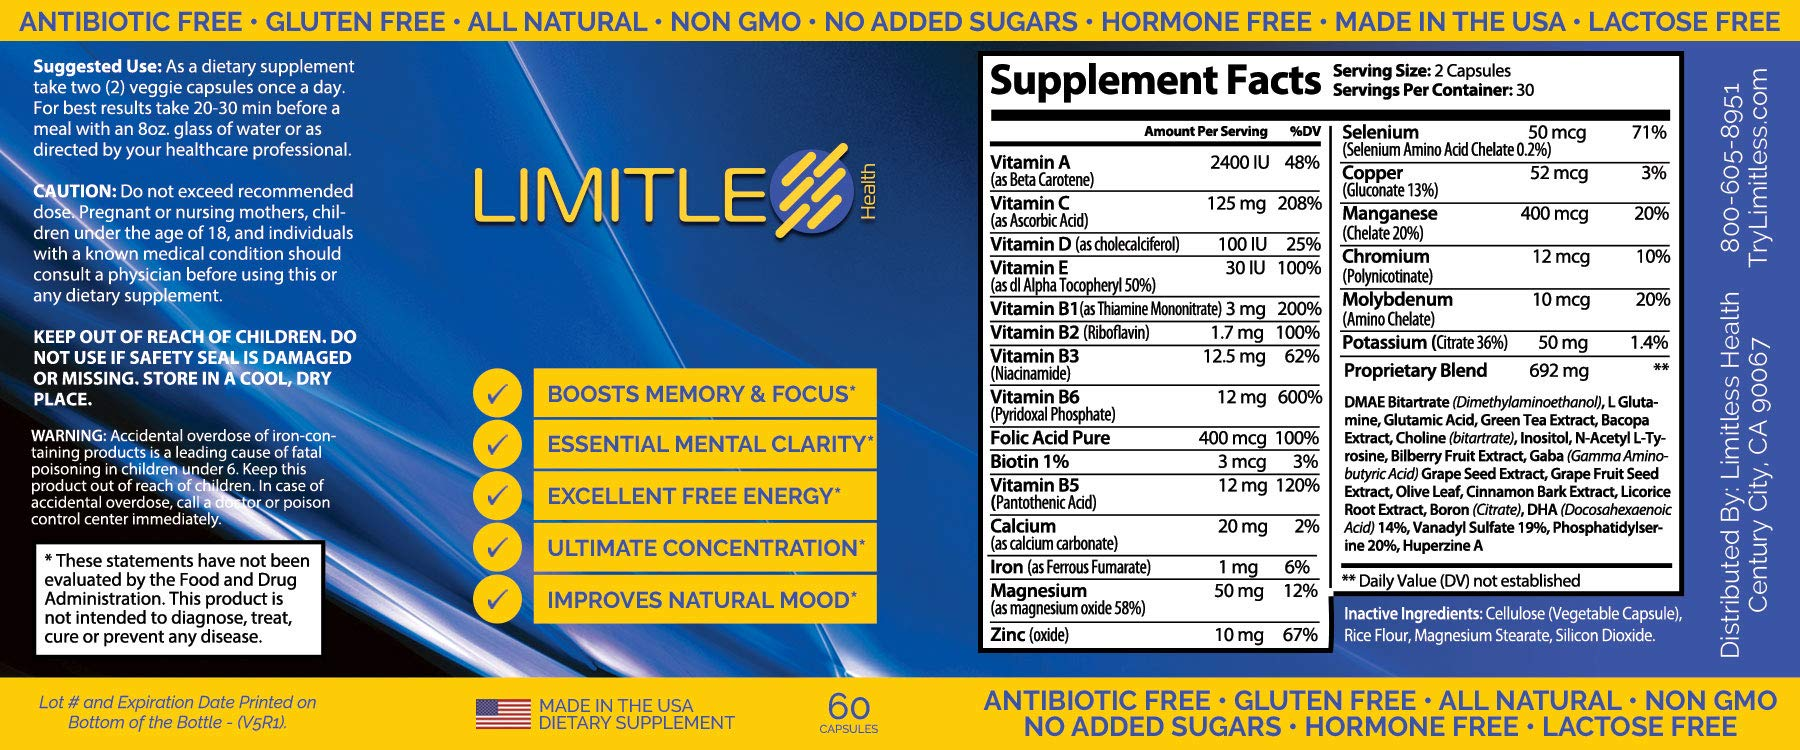 Limitless Health - Brain Function - 6 Bottles (Buy 3, Get 3 Free) Results in 27 Minutes | 8 Ingredients | Improve Reaction Speed | AS Heard ON The Radio